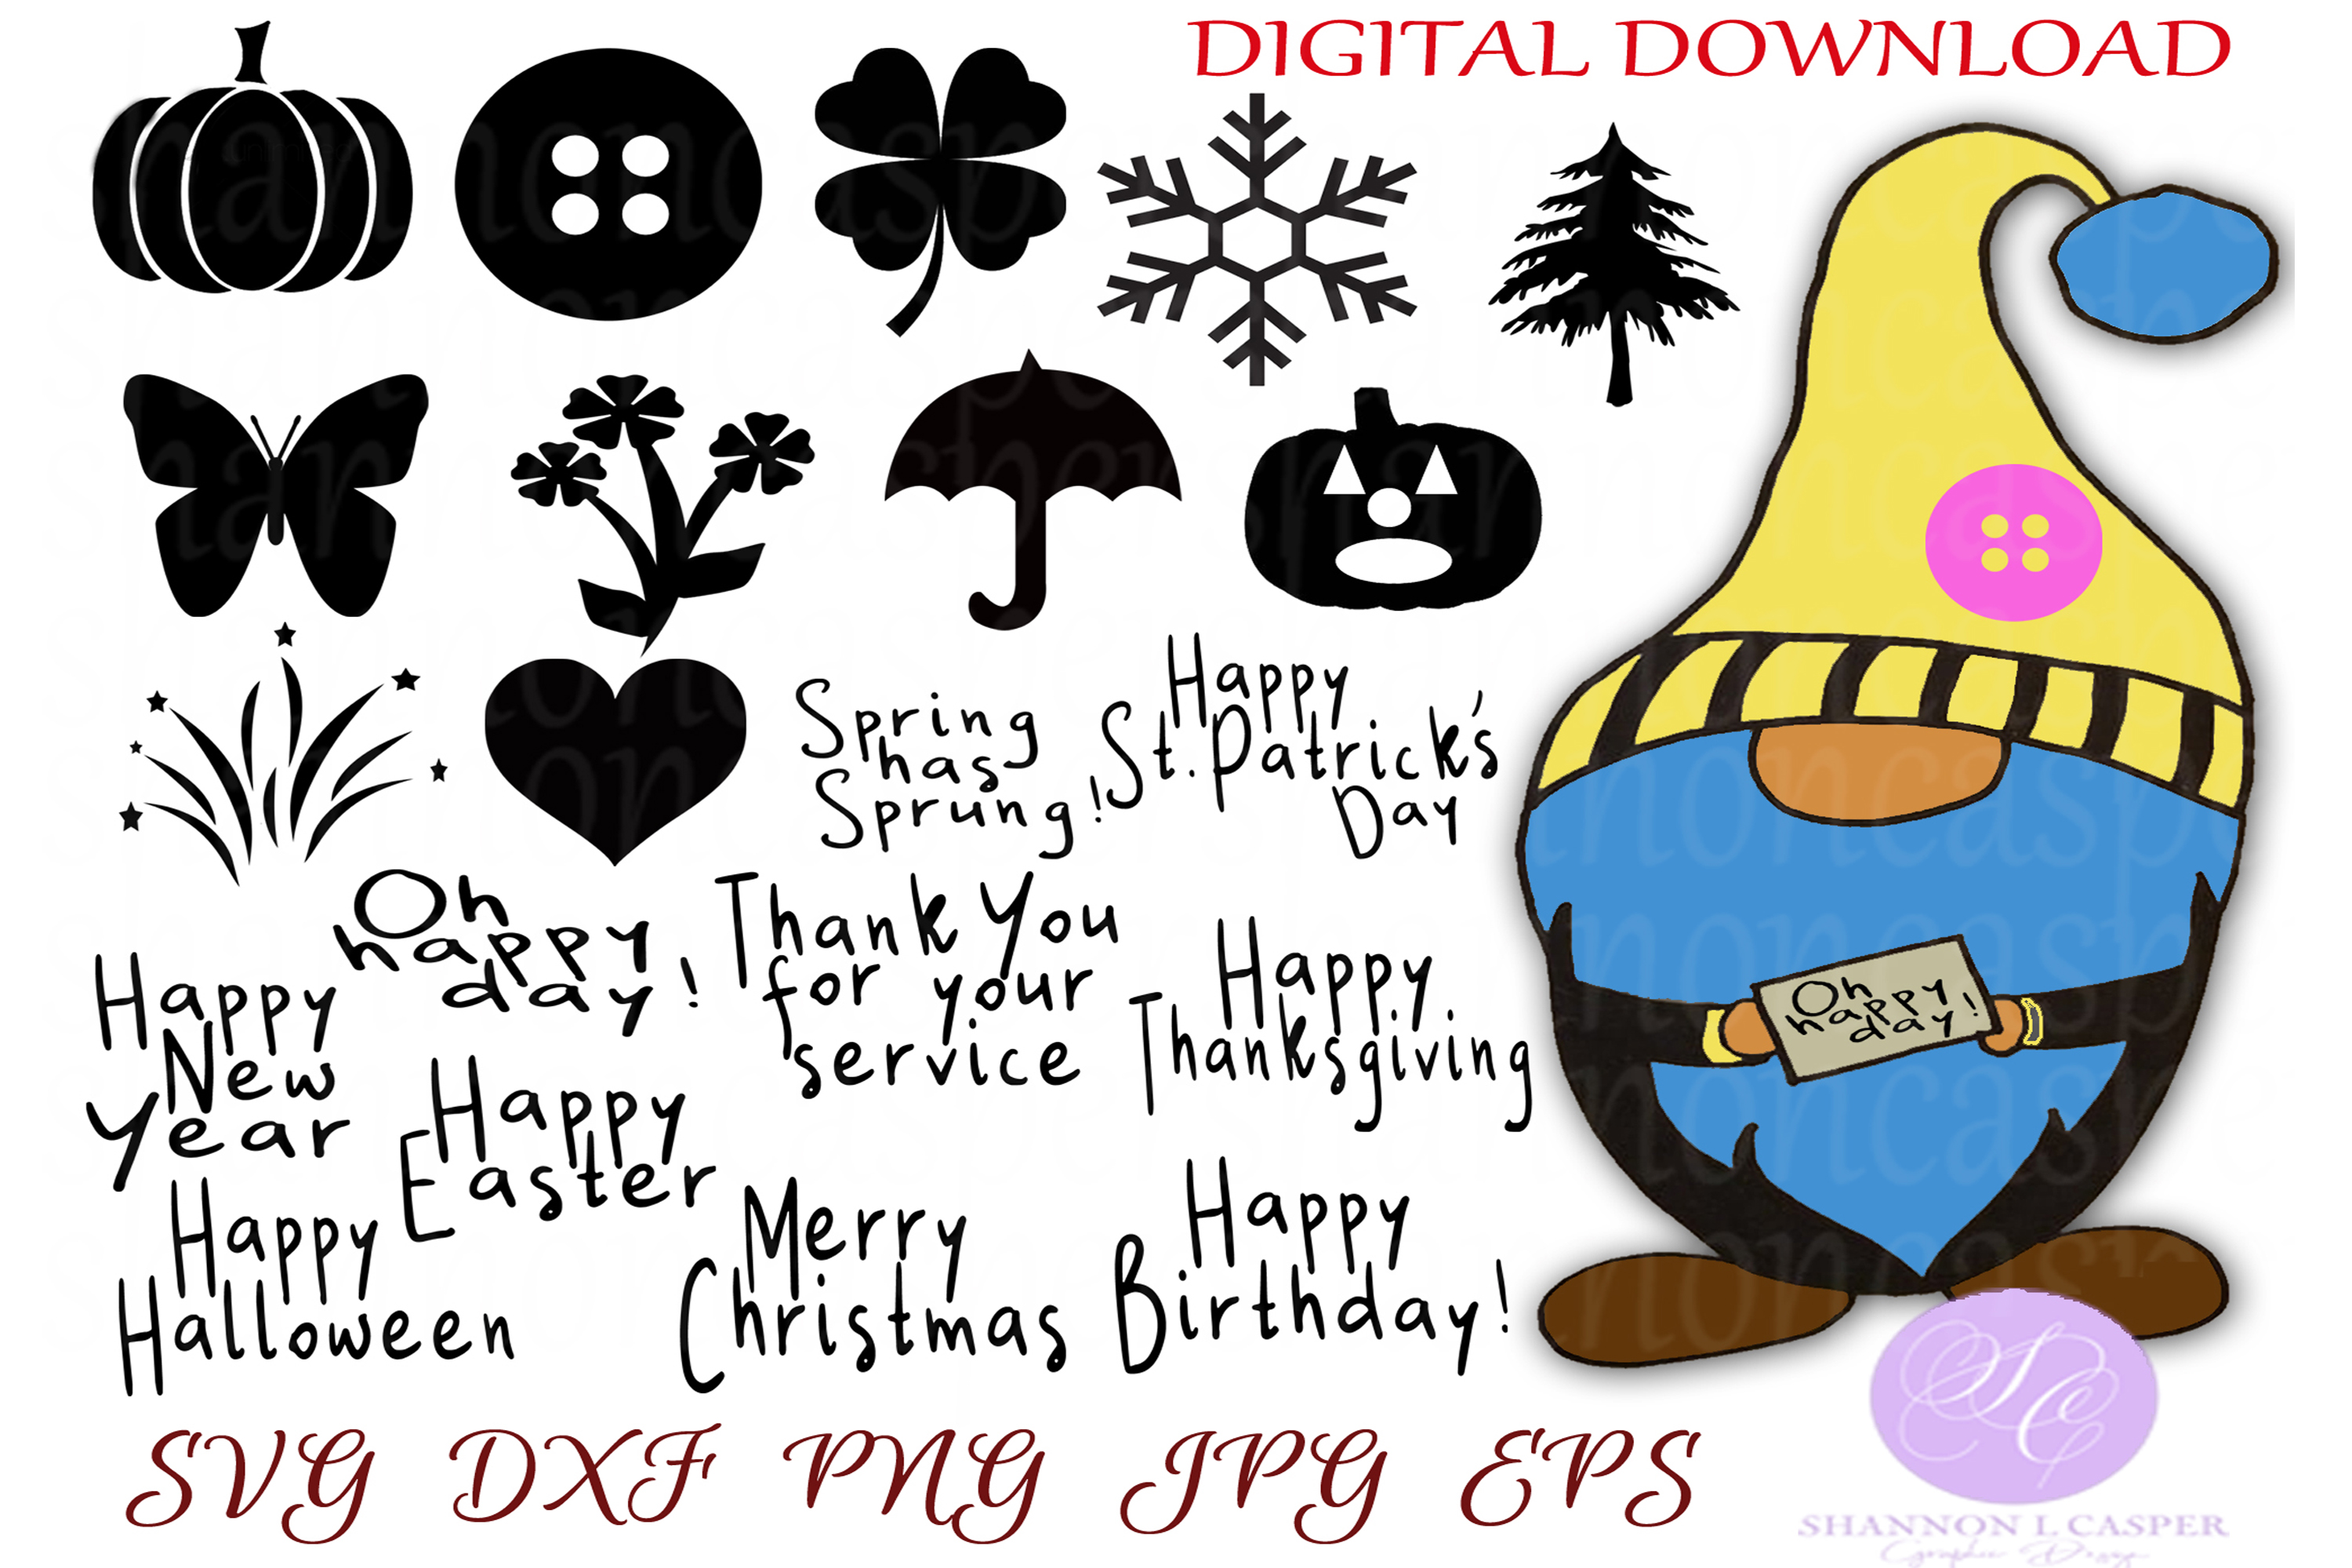 Download Free Scandanavian Gnome Bundle Hand Drawn Graphic By Shannon Casper SVG Cut Files